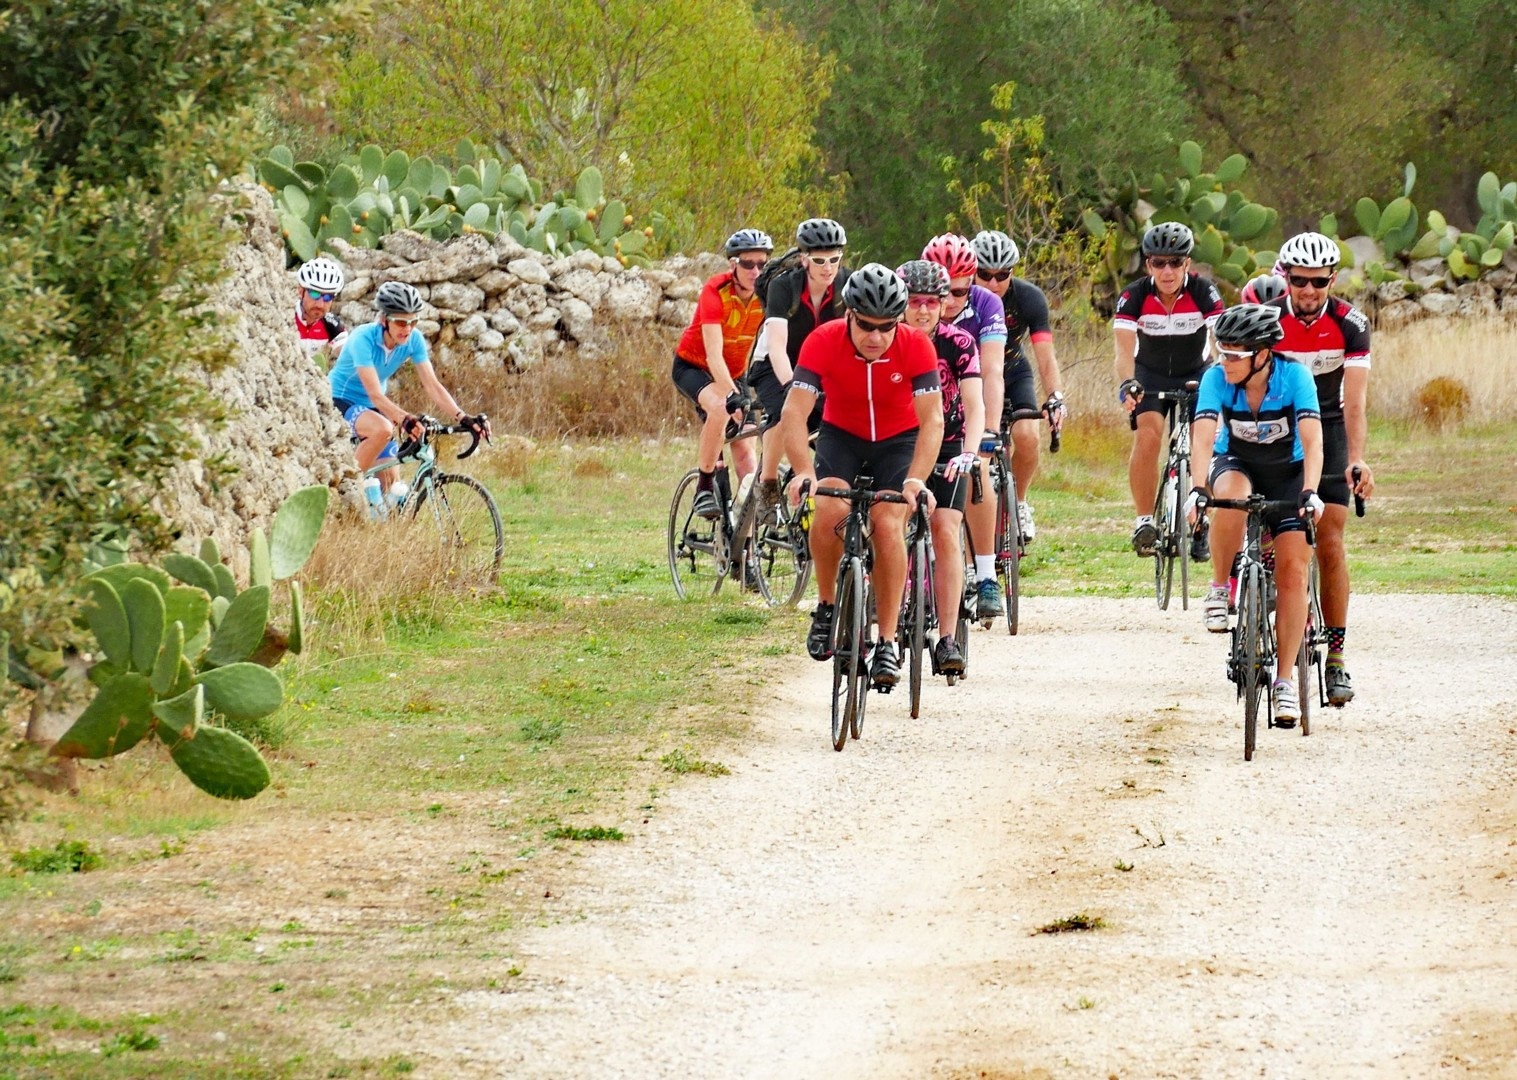 grand-traverse-guided-road-cycling-trip.jpg - Italy - Grand Traverse - South to North (22 days) - Guided Road Cycling Holiday - Road Cycling